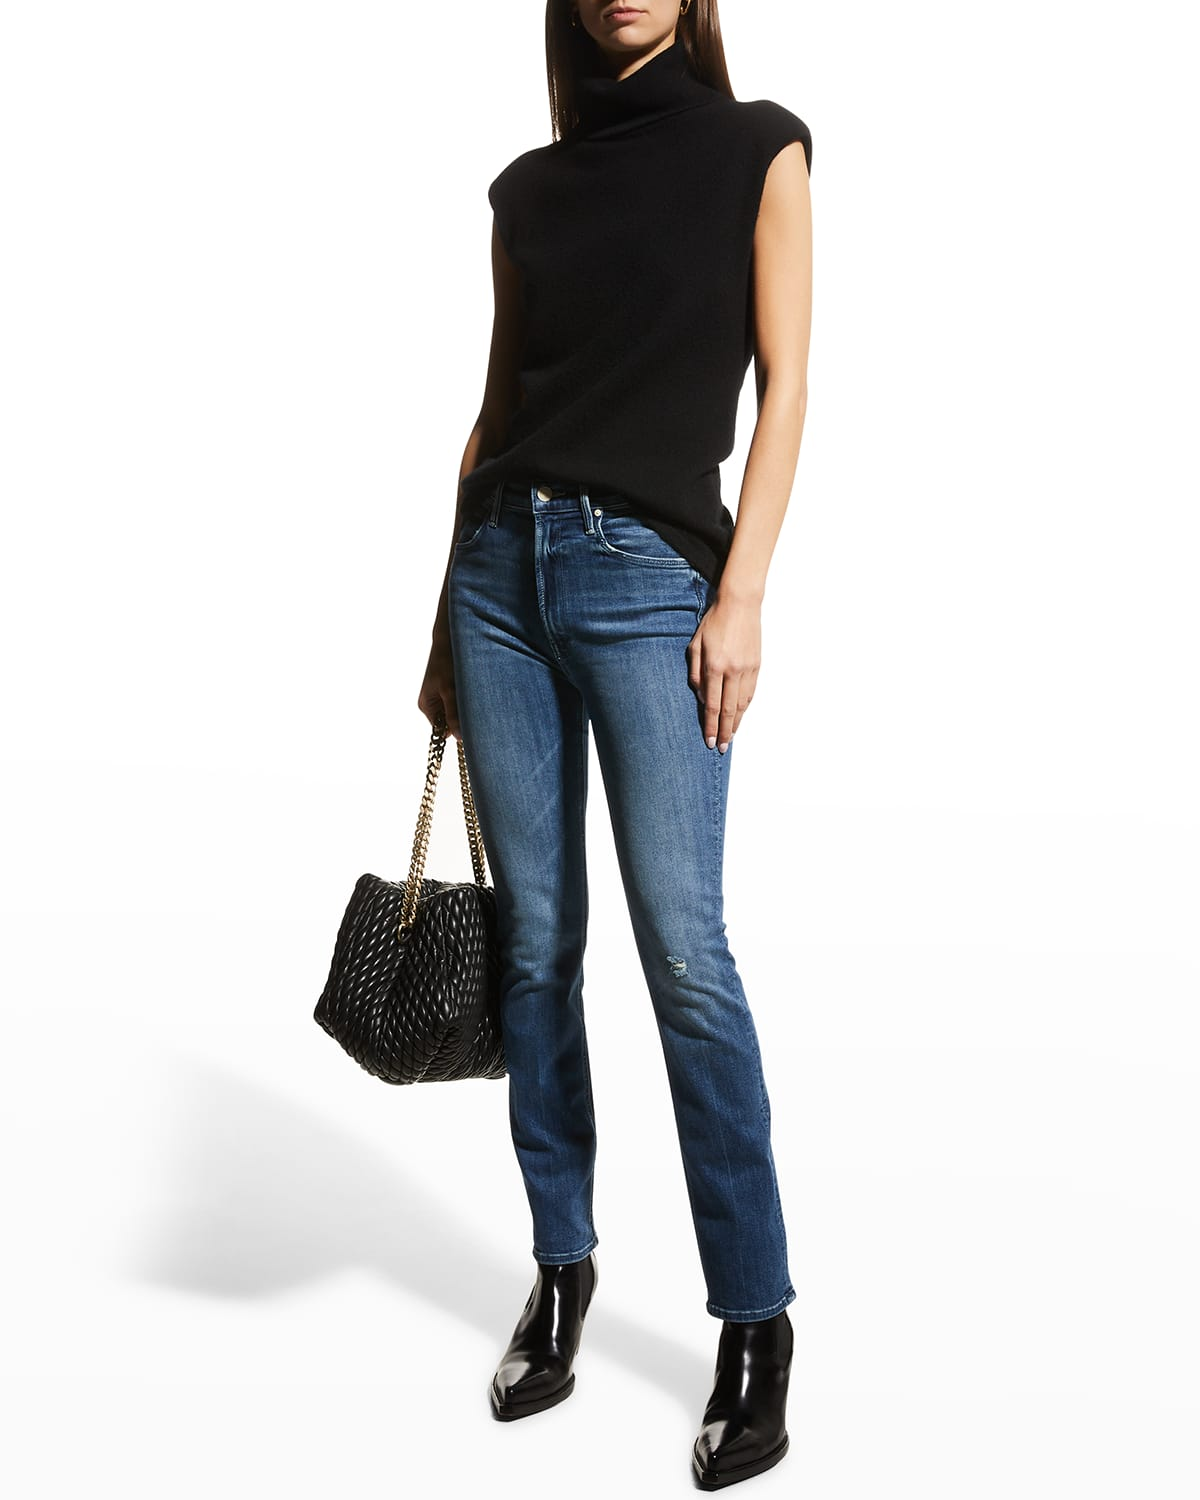 The Dazzler Hover Ankle Jeans